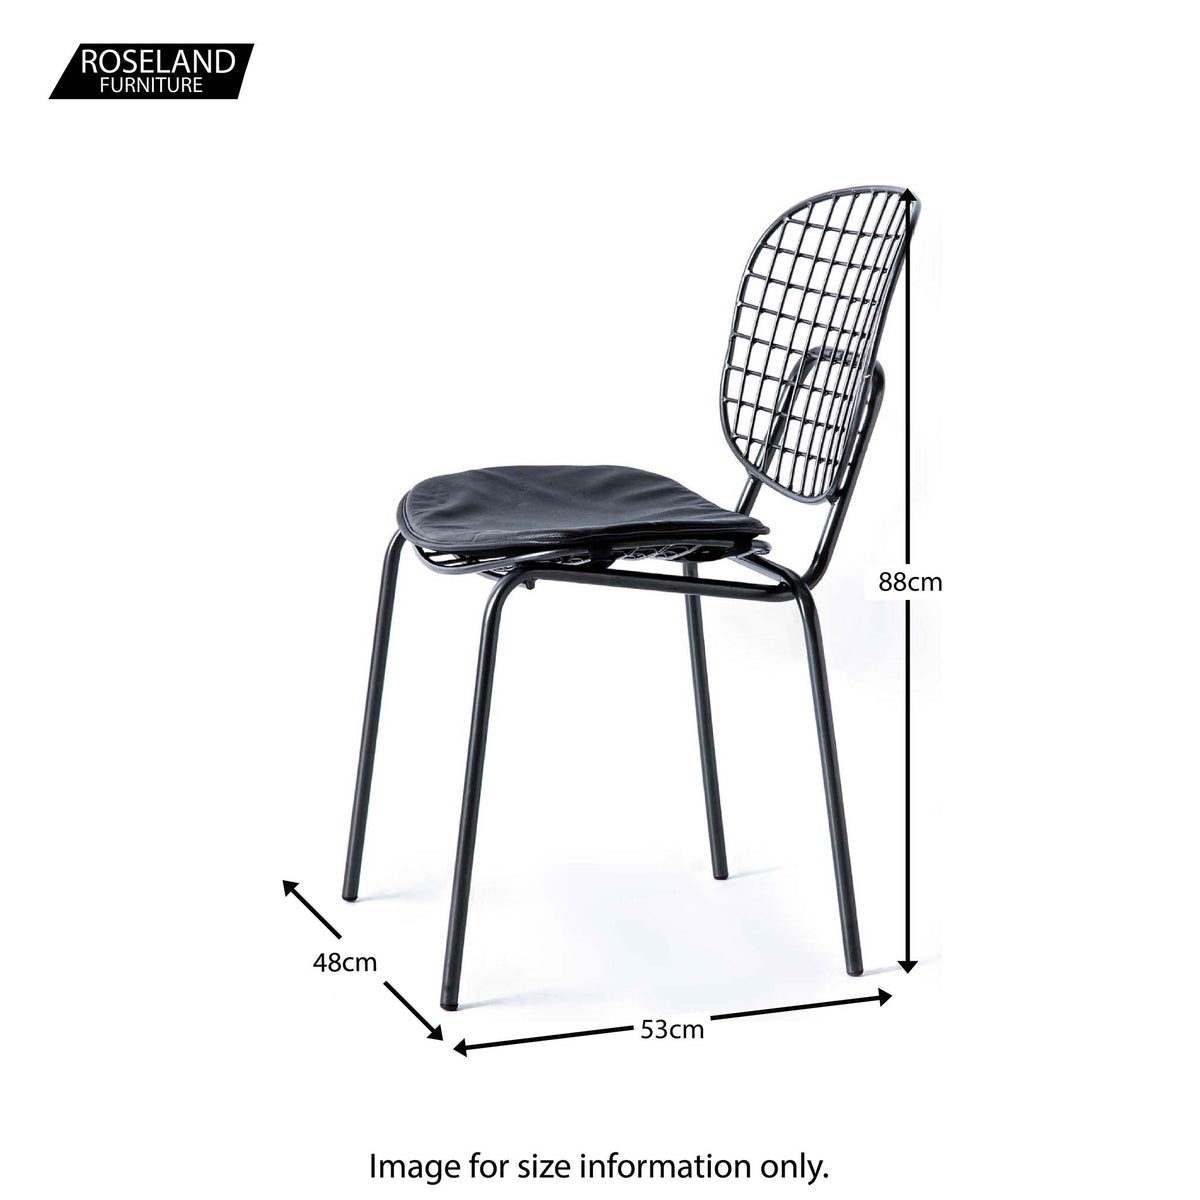 Freya Metal Dining Chair with Cushioned Seat - Size Guide